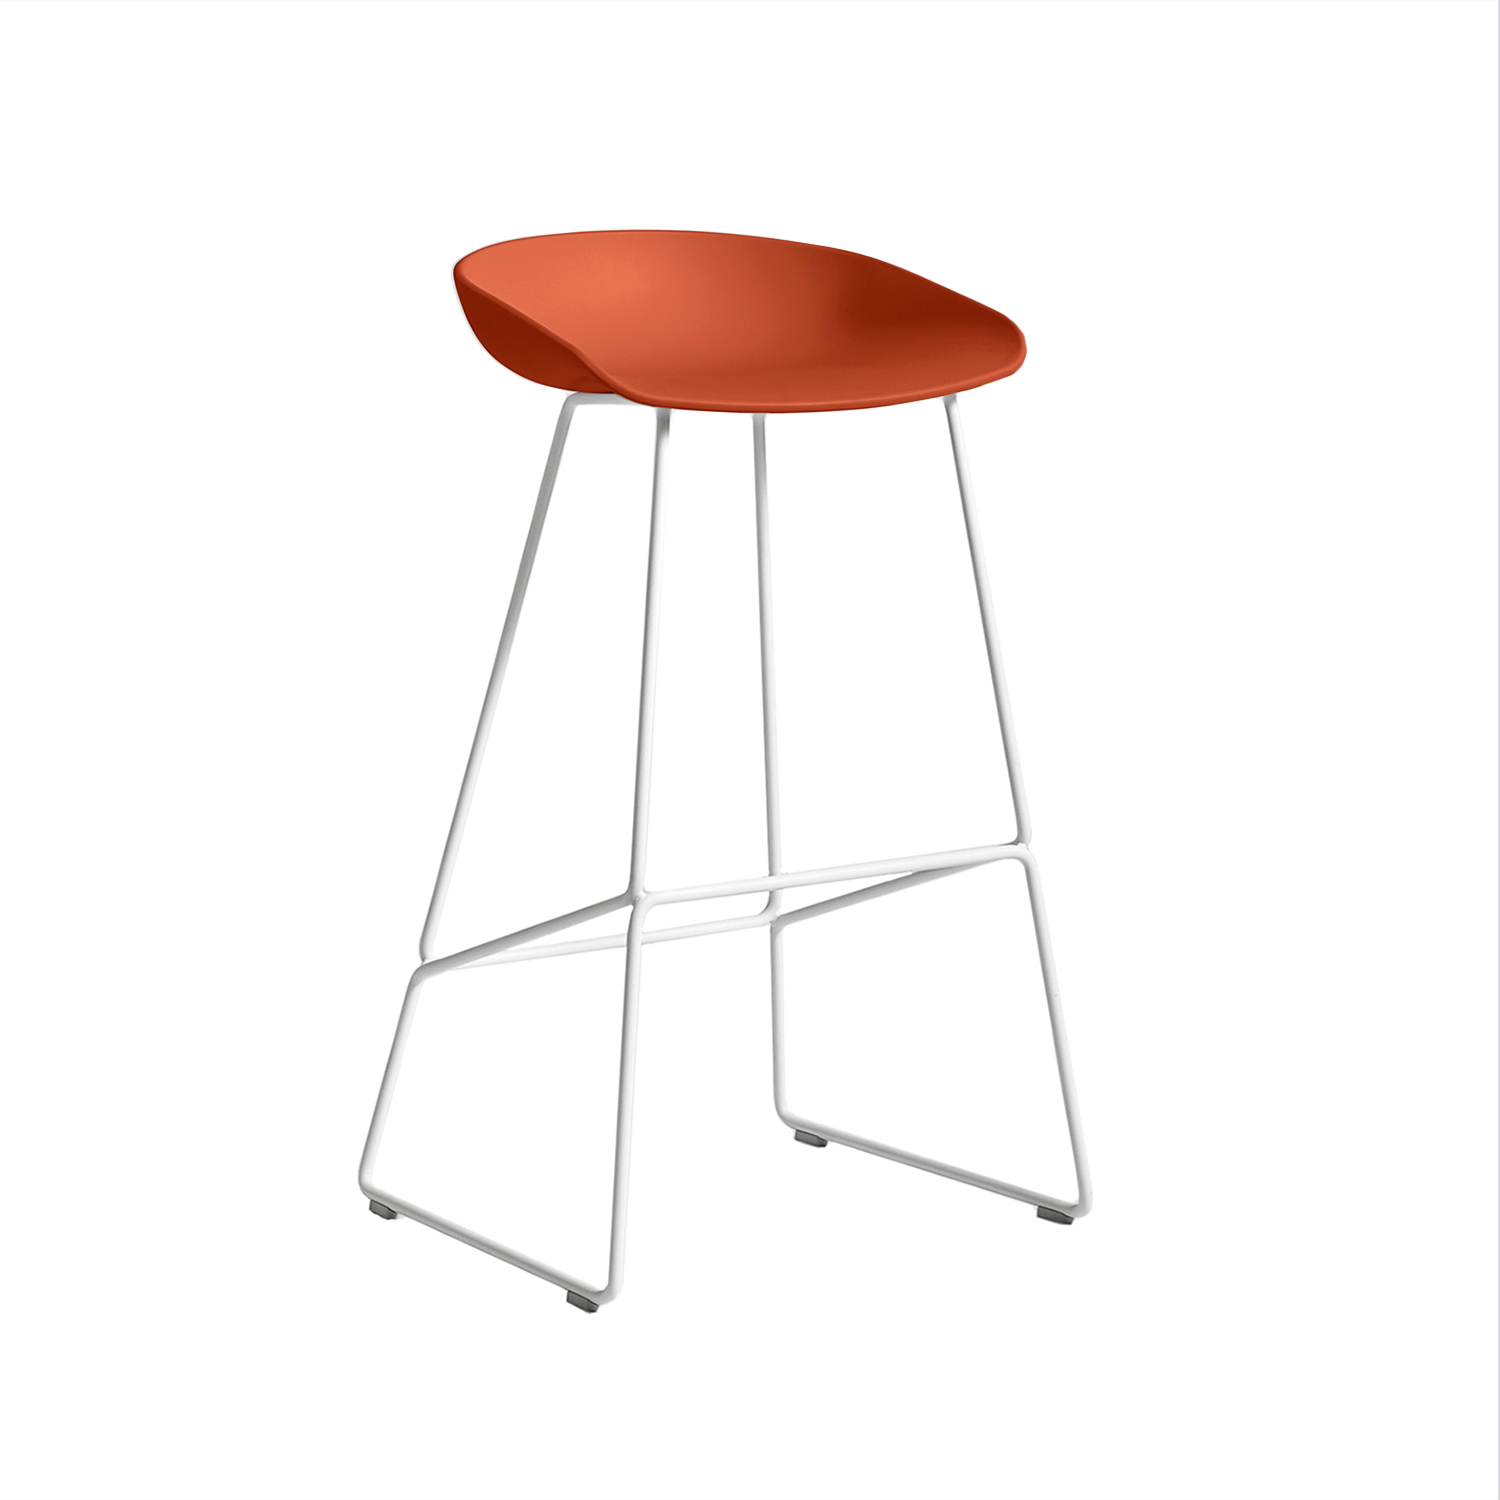 About a Stool 38 barstol h75, orange/vit